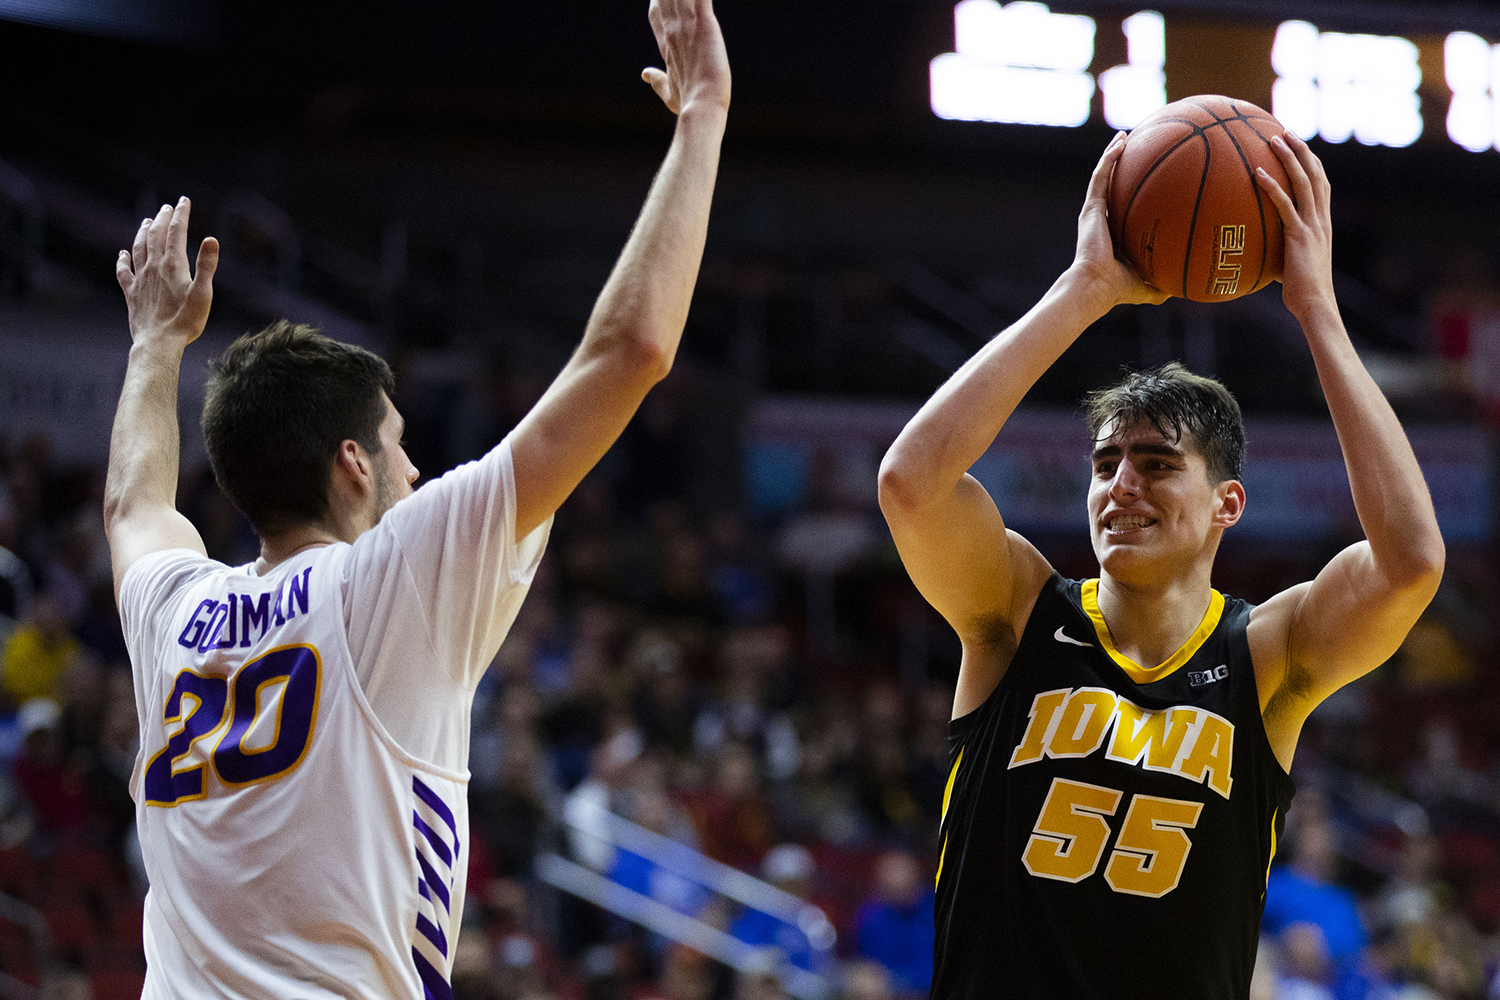 Iowa%27s+Luka+Garza+looks+to+pass+the+ball+during+the+Iowa%2FUNI+men%27s+basketball+game+at+Wells+Fargo+Arena+in+Des+Moines+on+Saturday%2C+Dec.+15%2C+2018.+The+Hawkeyes+defeated+the+Panthers%2C+77-54.+